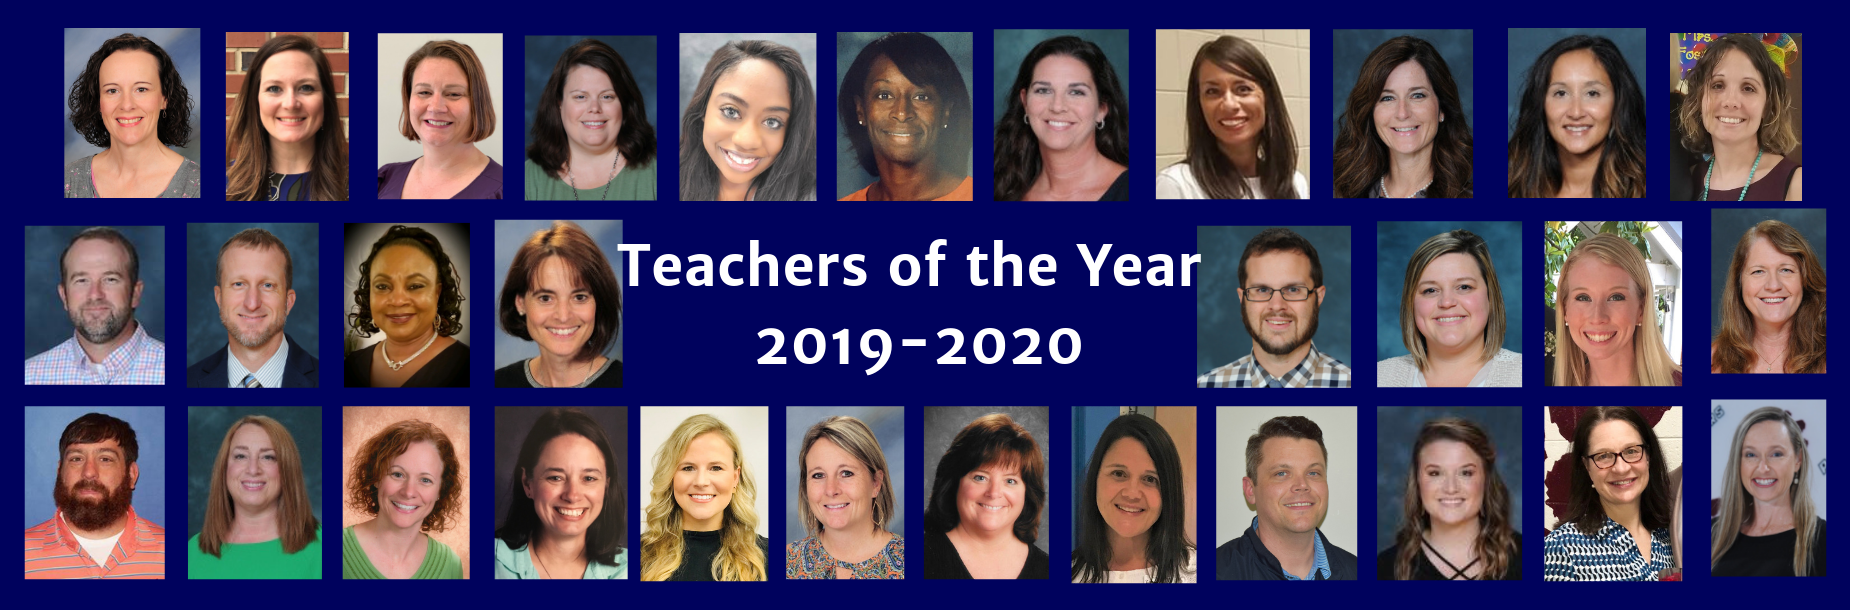 CCSD Teachers of the Year 2019-2020